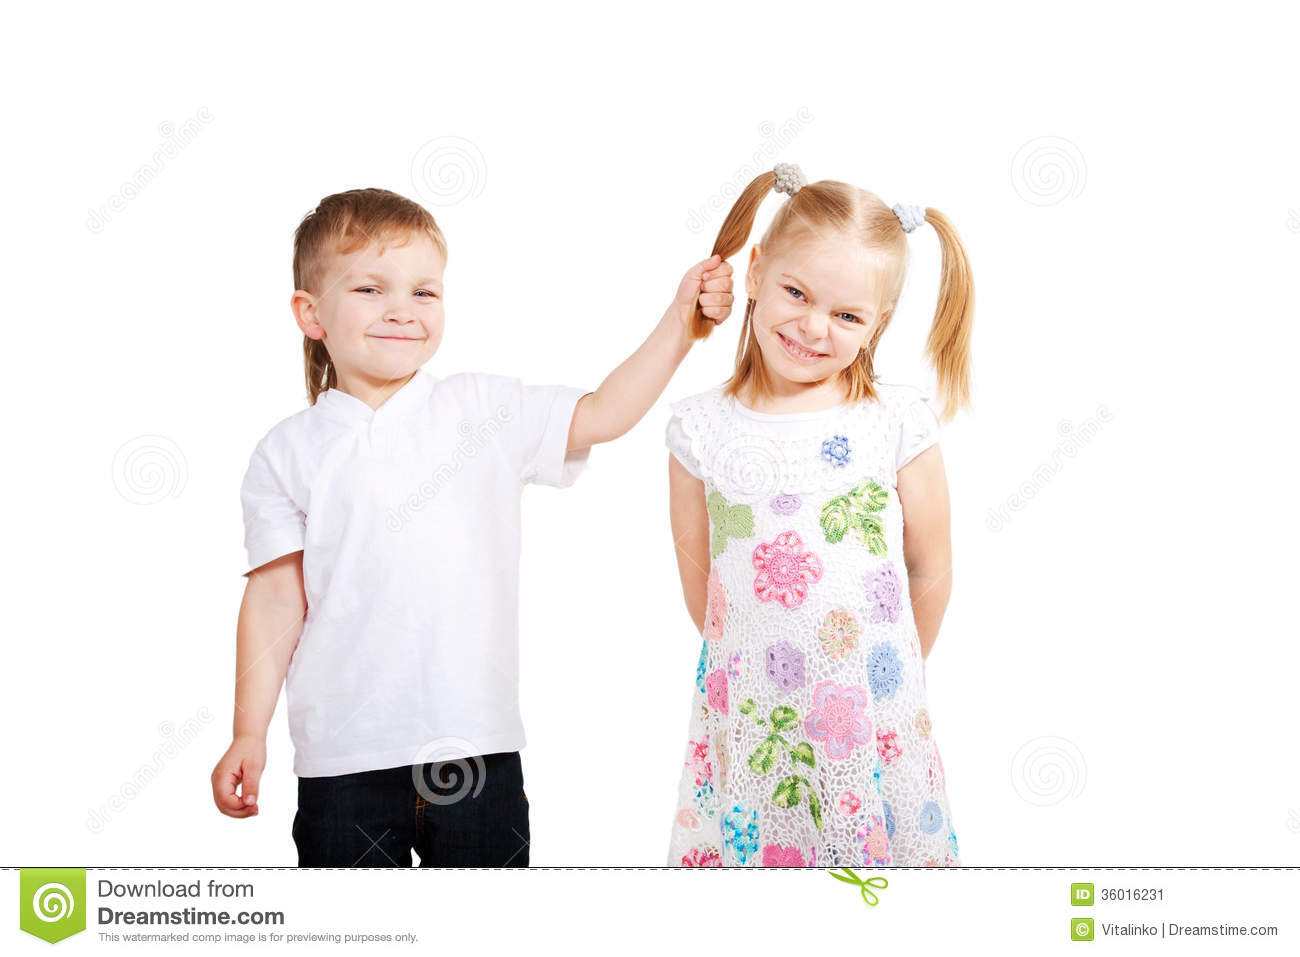 Small child Love Wallpaper : children Love. couple Of Small Kids Stock Image - Image: 36016231